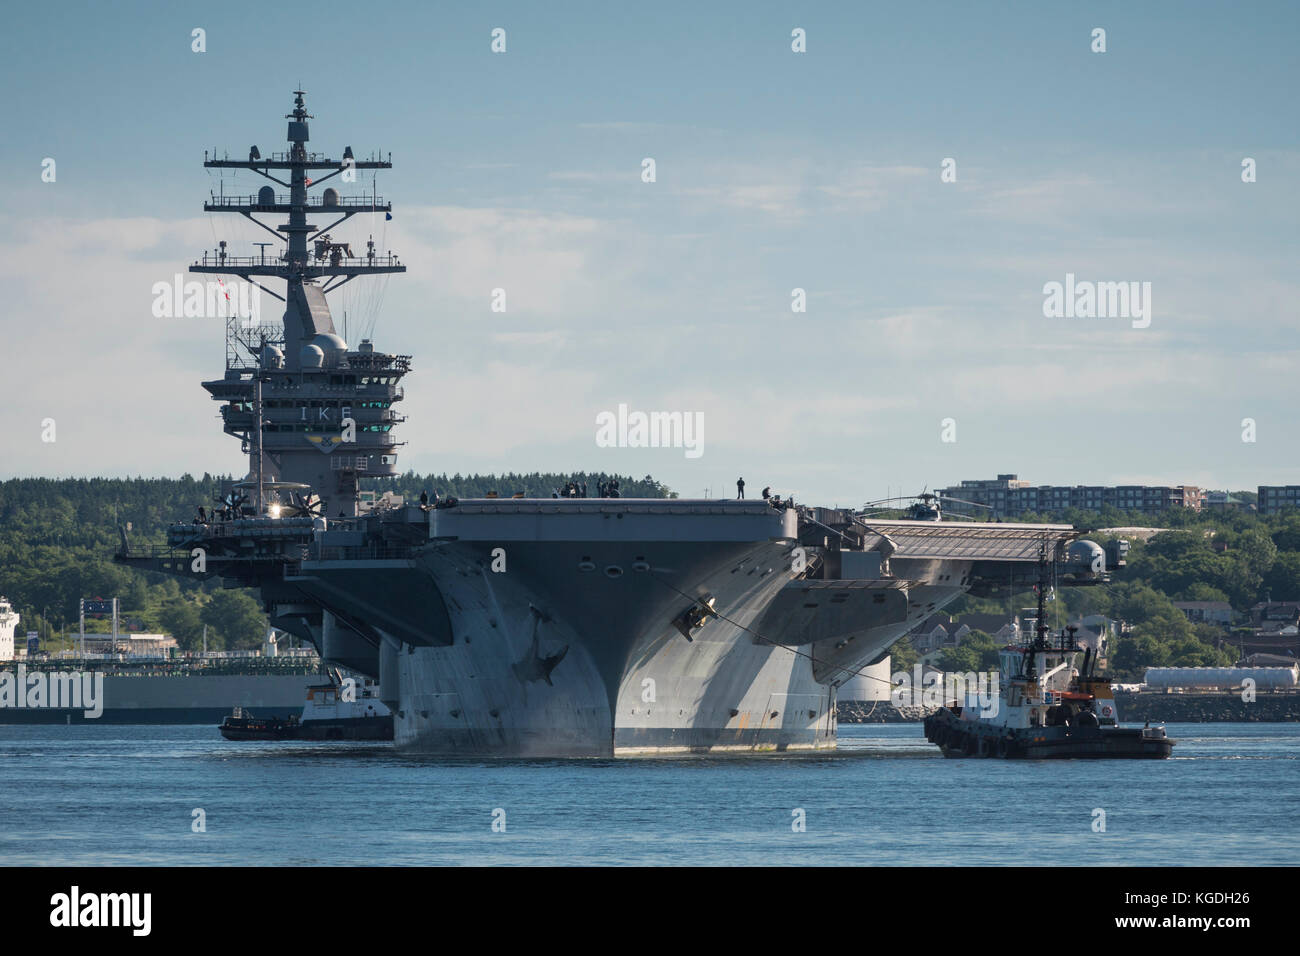 United States Navy (USN) nuclear-powered aircraft carrier (CVN) DWIGHT D. EISENHOWER in the harbour at Halifax, - Stock Image